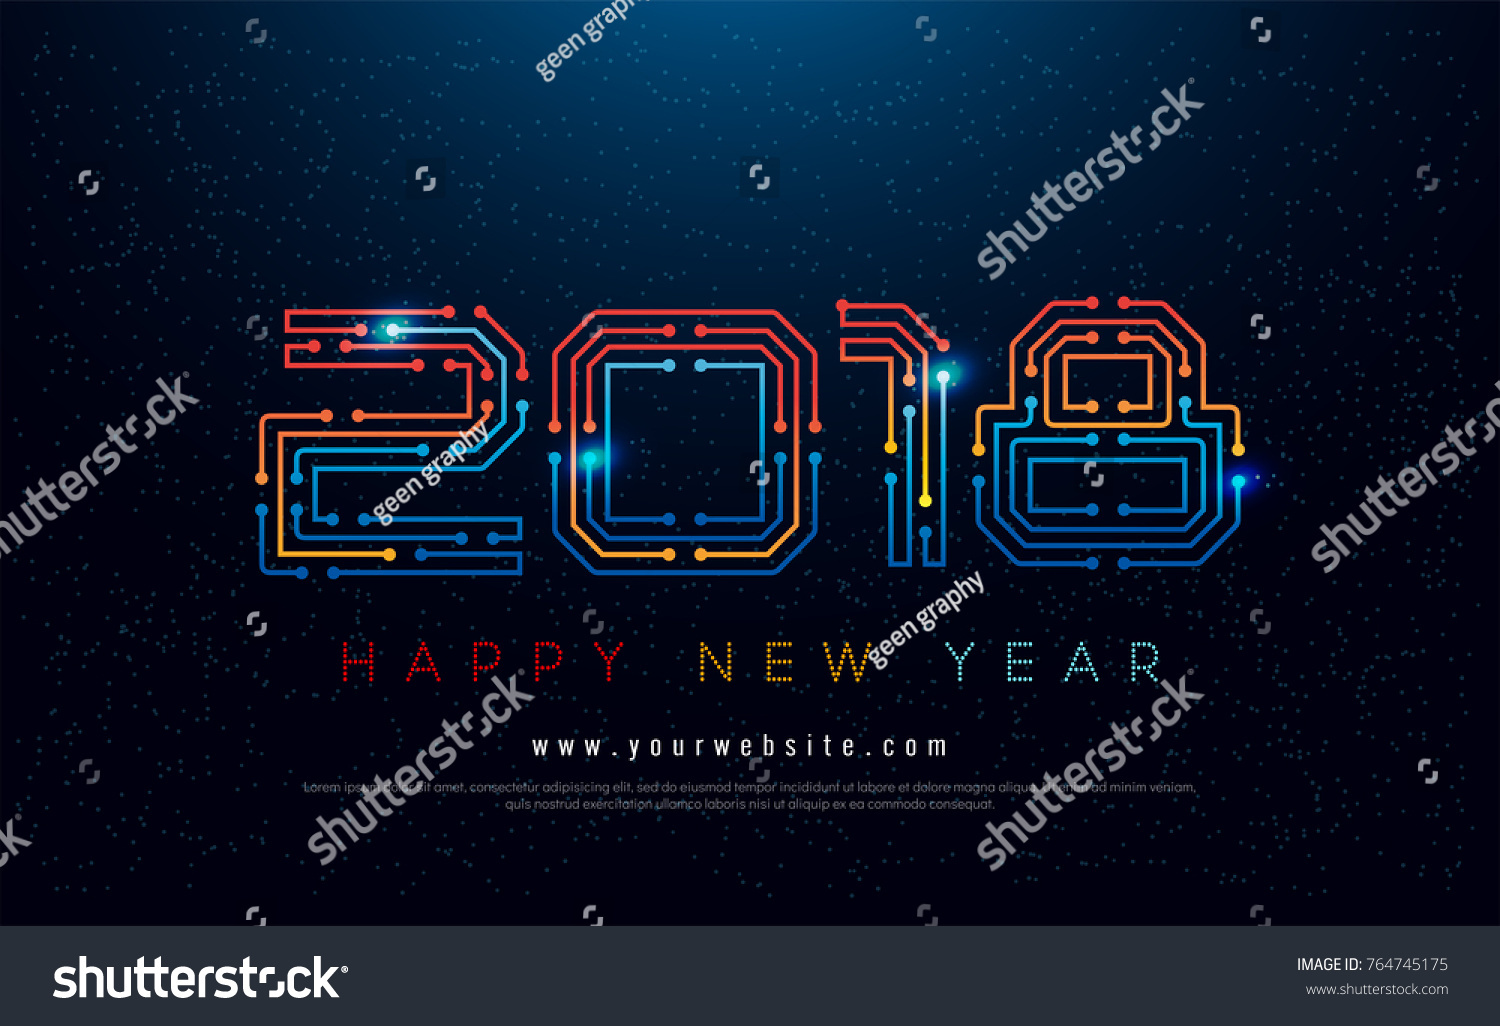 Happy new year 2018 typography technology stock vector royalty free happy new year 2018 typography technology concept on navy background new year greeting card design m4hsunfo